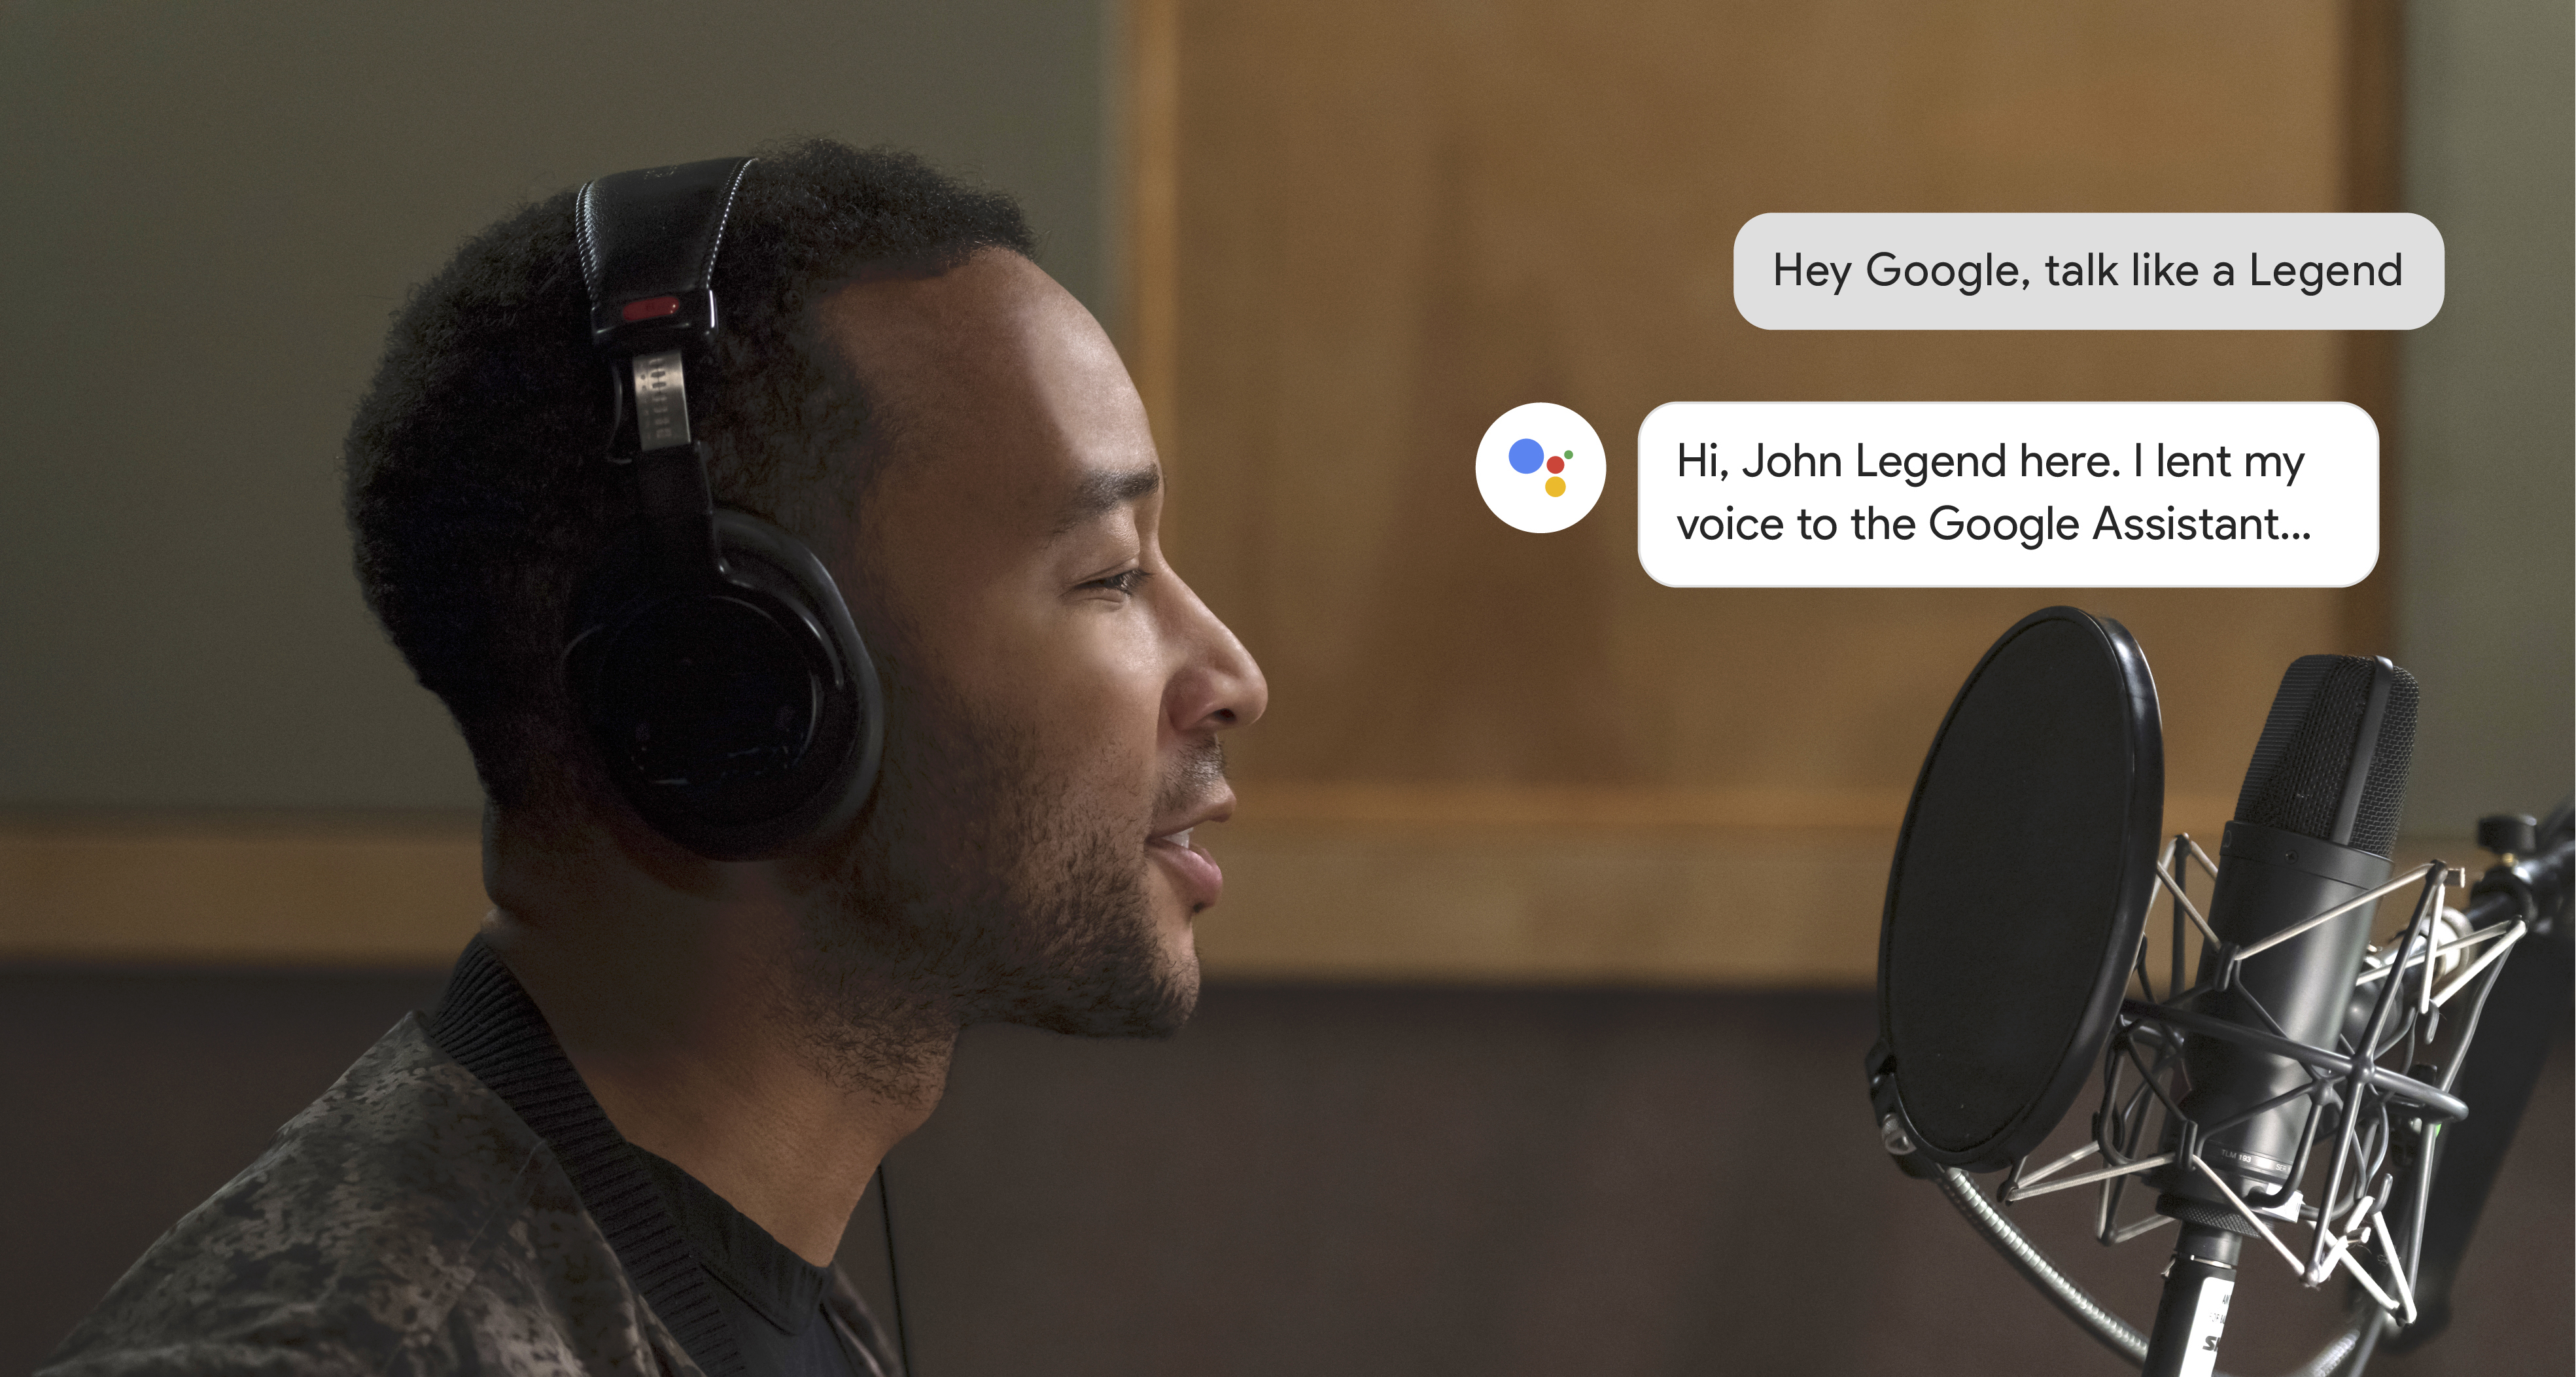 Google Assistant finally gets the celebrity voice that was promised